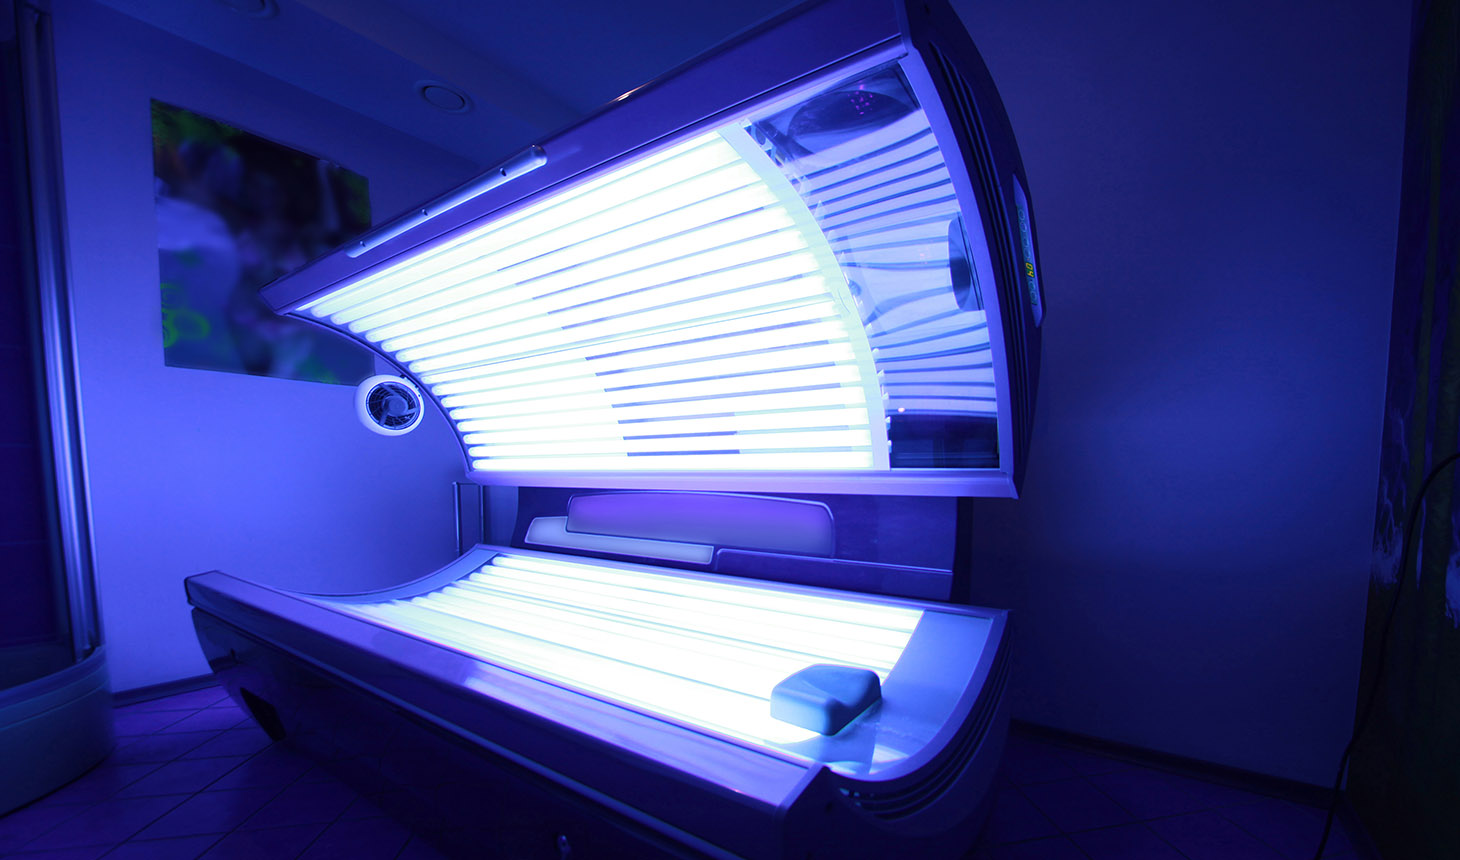 Image of Tanning booth